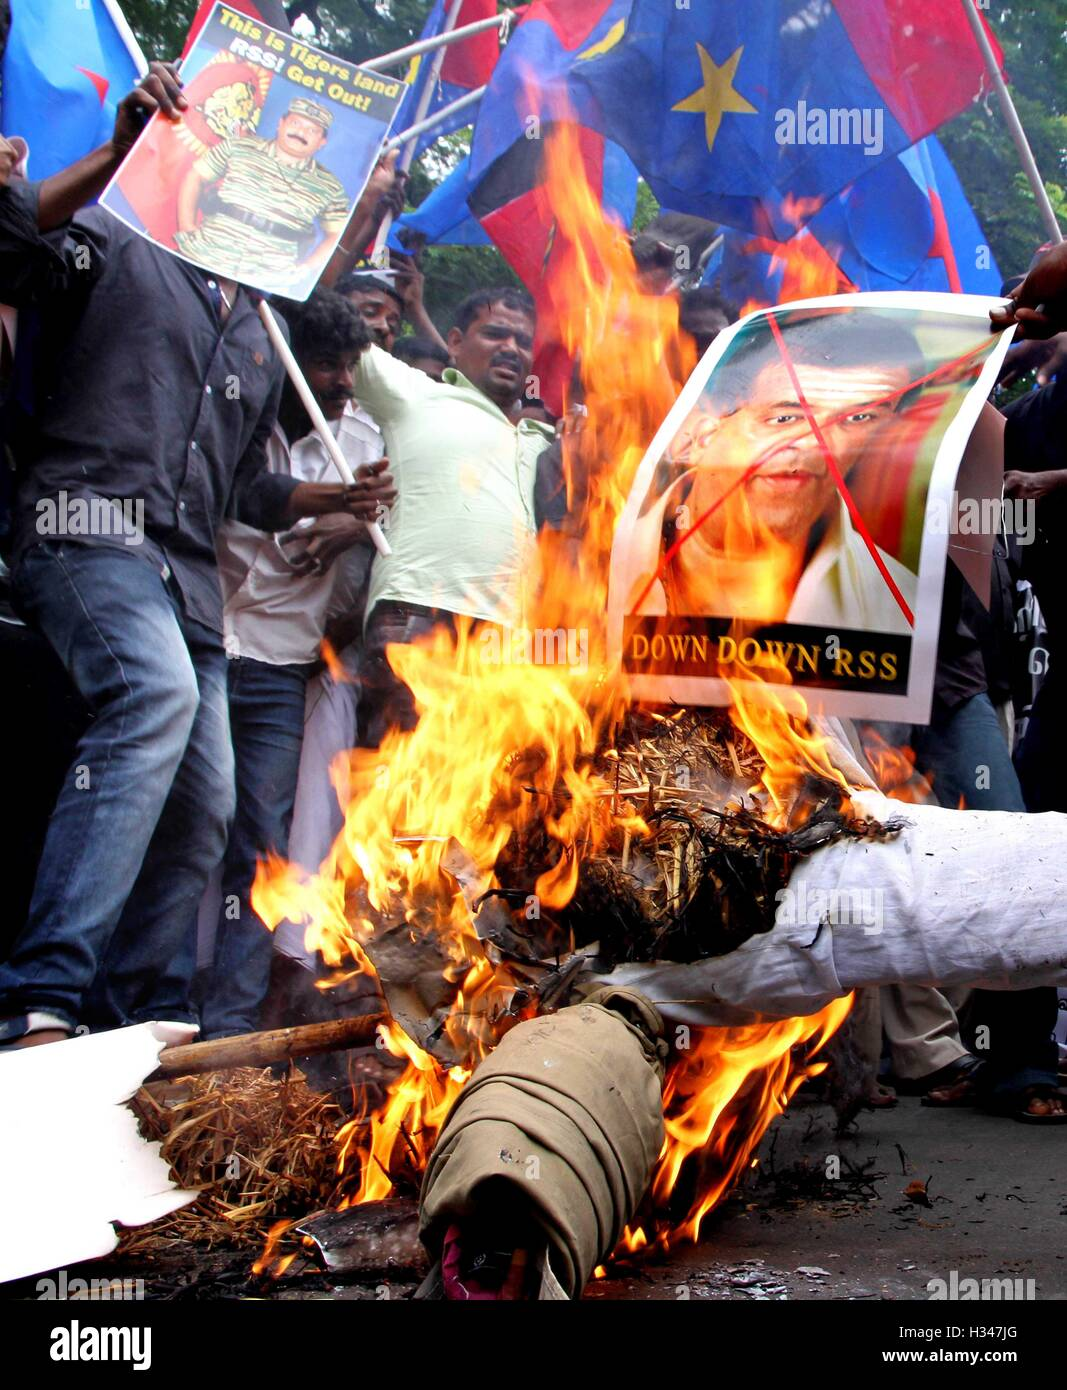 Supporters of several Tamil nationalist parties burn effigies stage protest against Kaveri water sharing issue Chennai - Stock Image